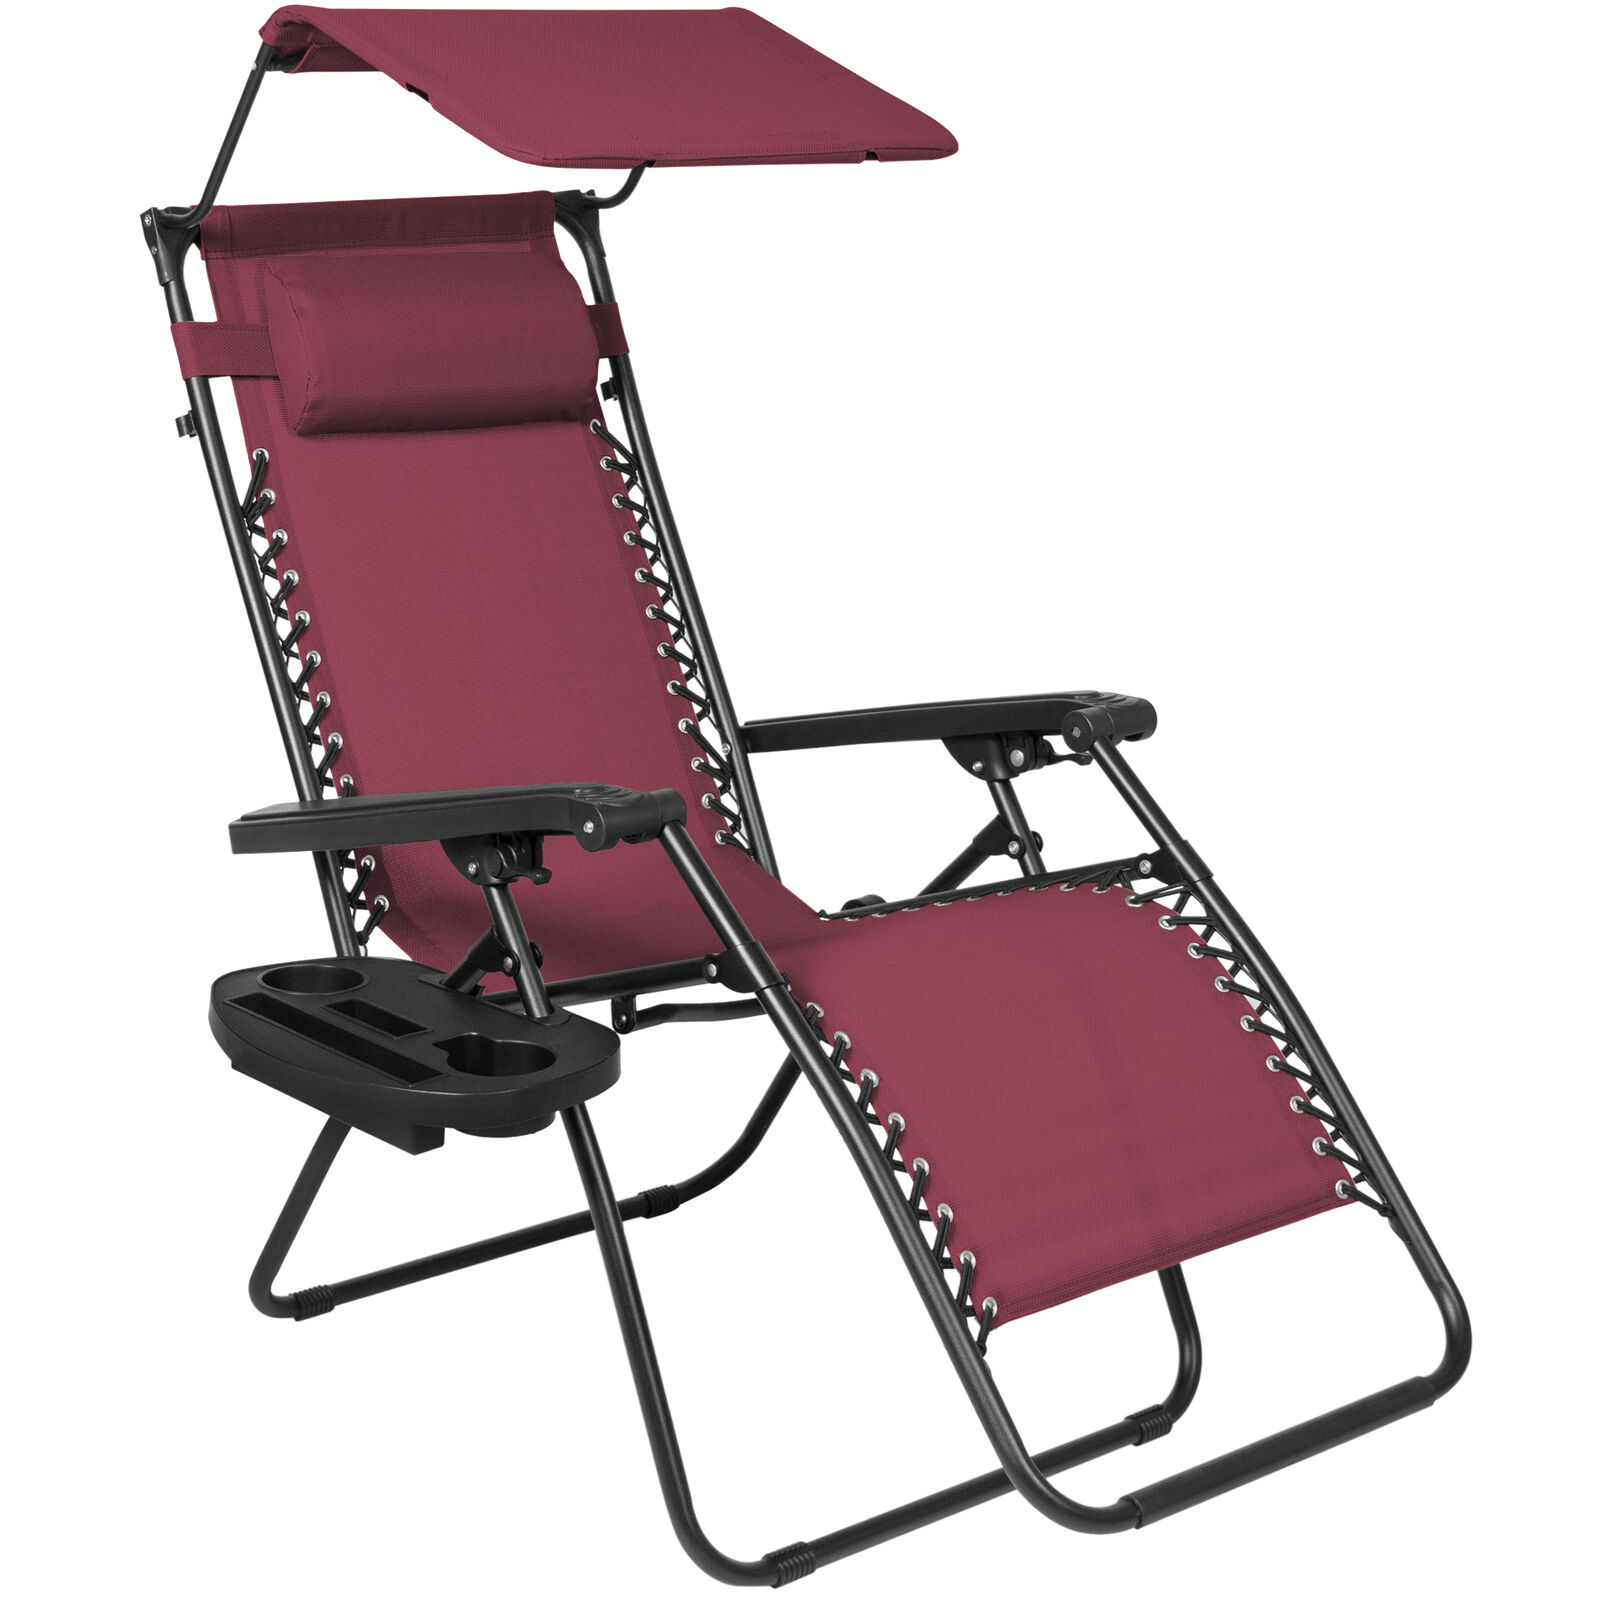 Gravity Lounge Chair Best Choice Products Folding Zero Gravity Lounge Chair With Canopy Shade Magazine Cup Holder Burgundy